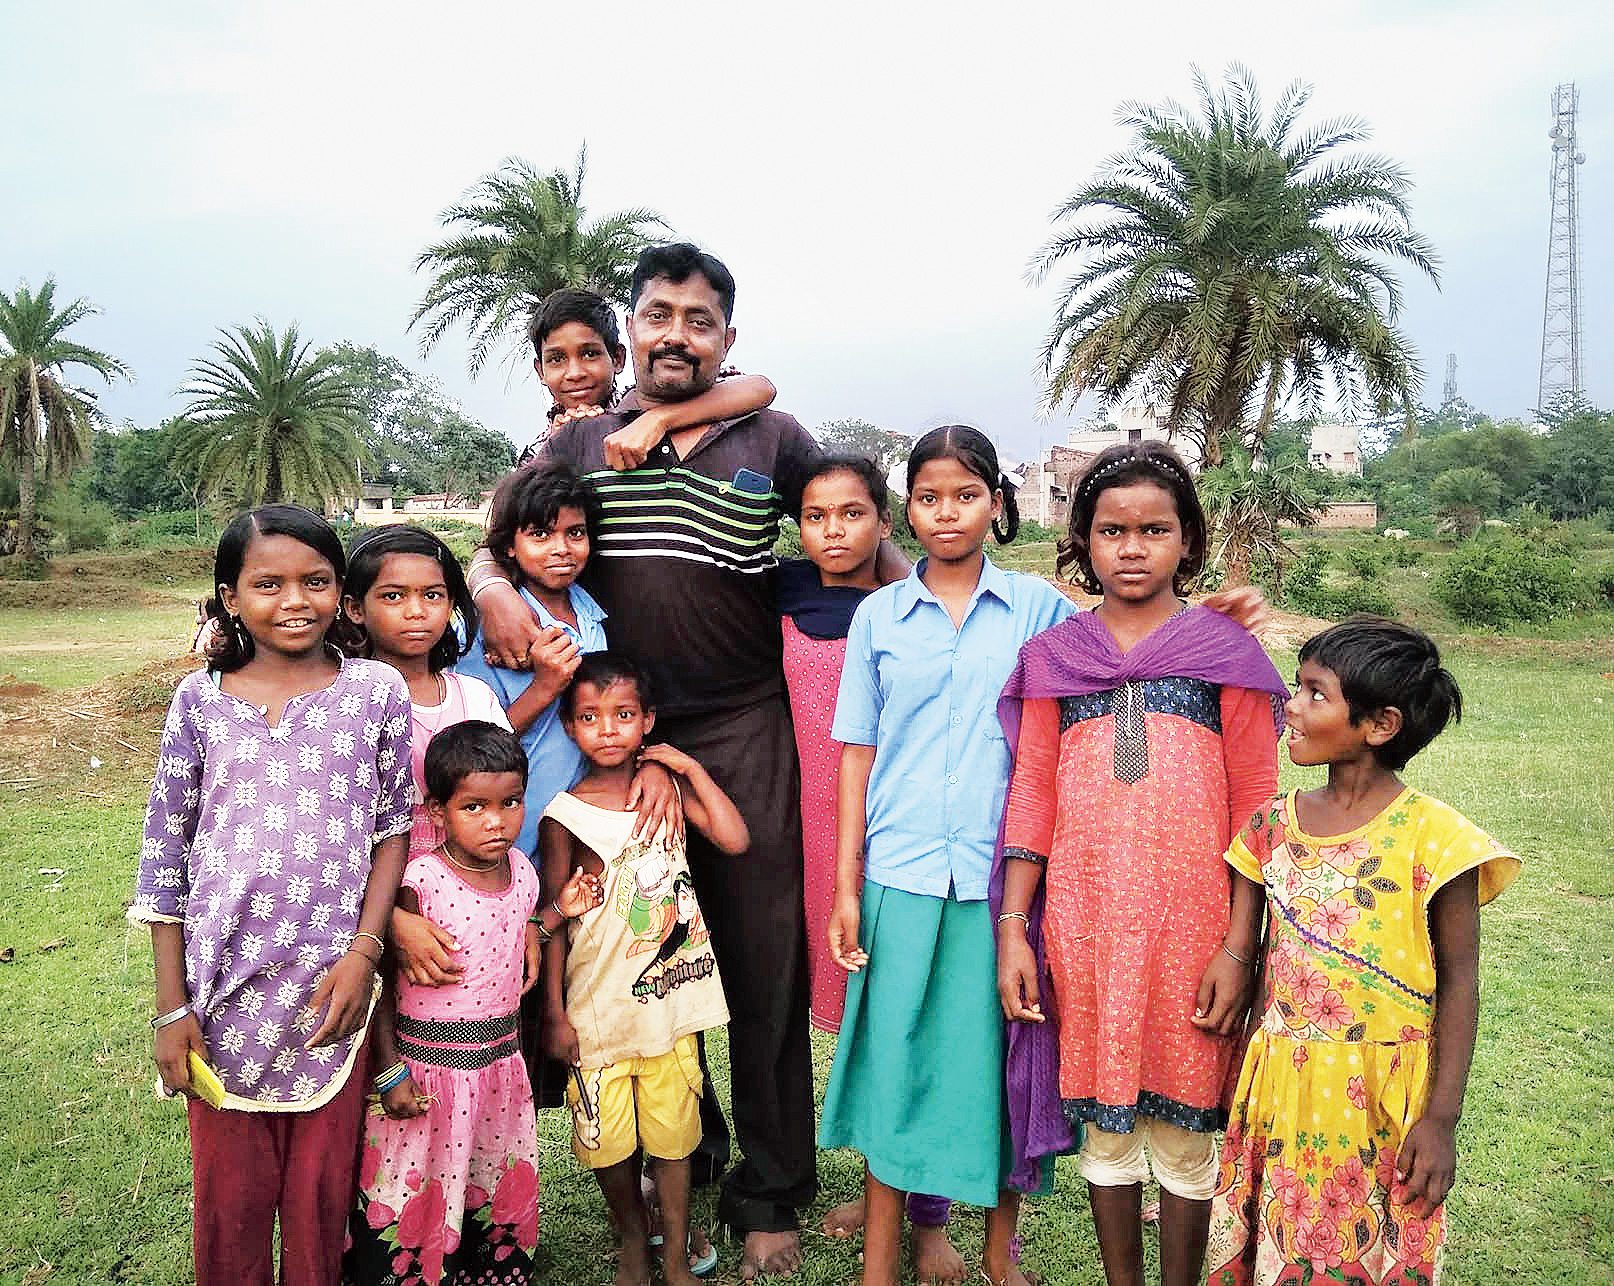 Arup Mukherjee, a constable of the South Traffic Guard, with some of the students of the school that he started with his savings in 2011 at Puncha village of Purulia district.